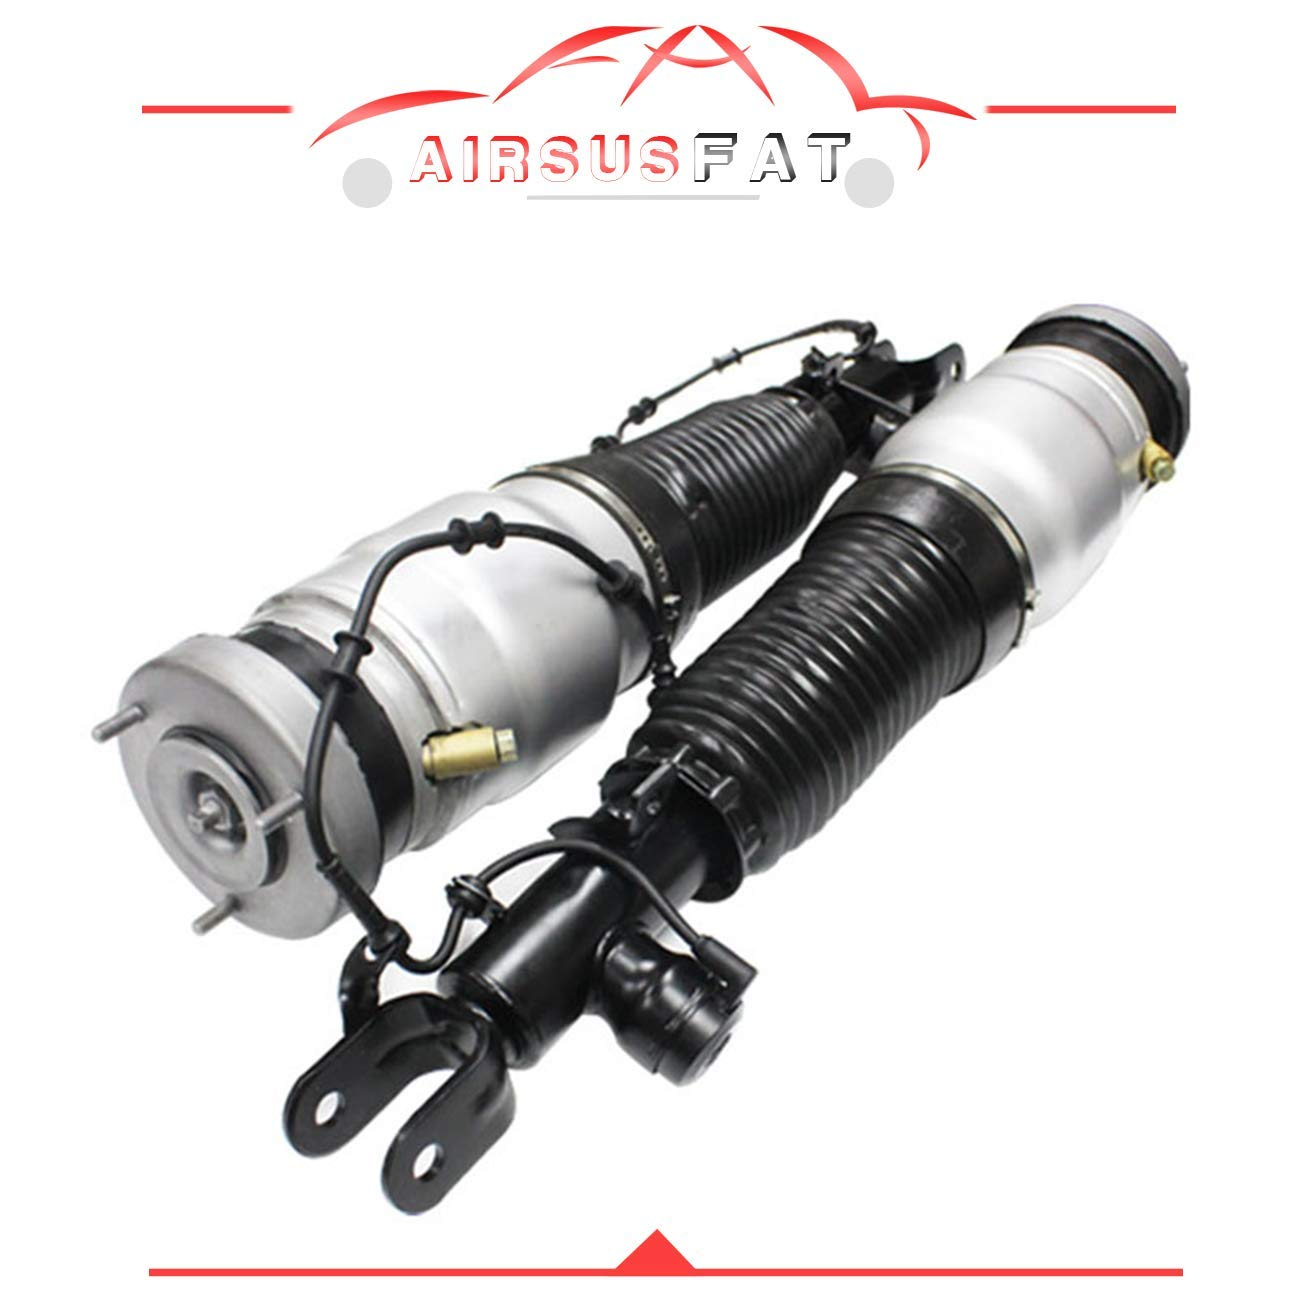 Front Left air shock absorbers Fit for 2013 Hyundai Equus4Door 5.0L 54605-3N517